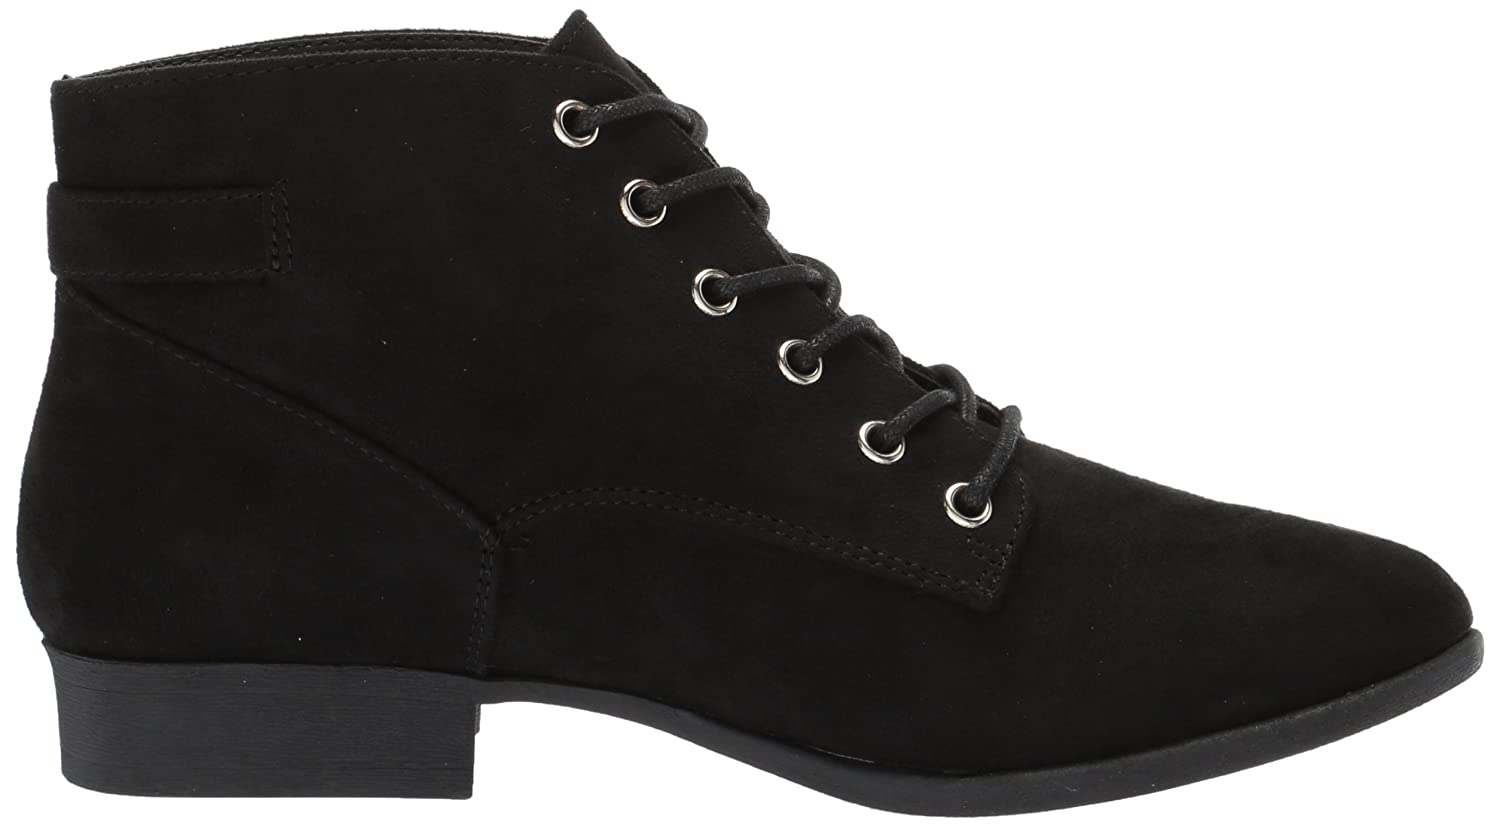 Call It Spring Women's Gitana Ankle Bootie B06ZZ3NQFG 5 B(M) US|Black Nubuck